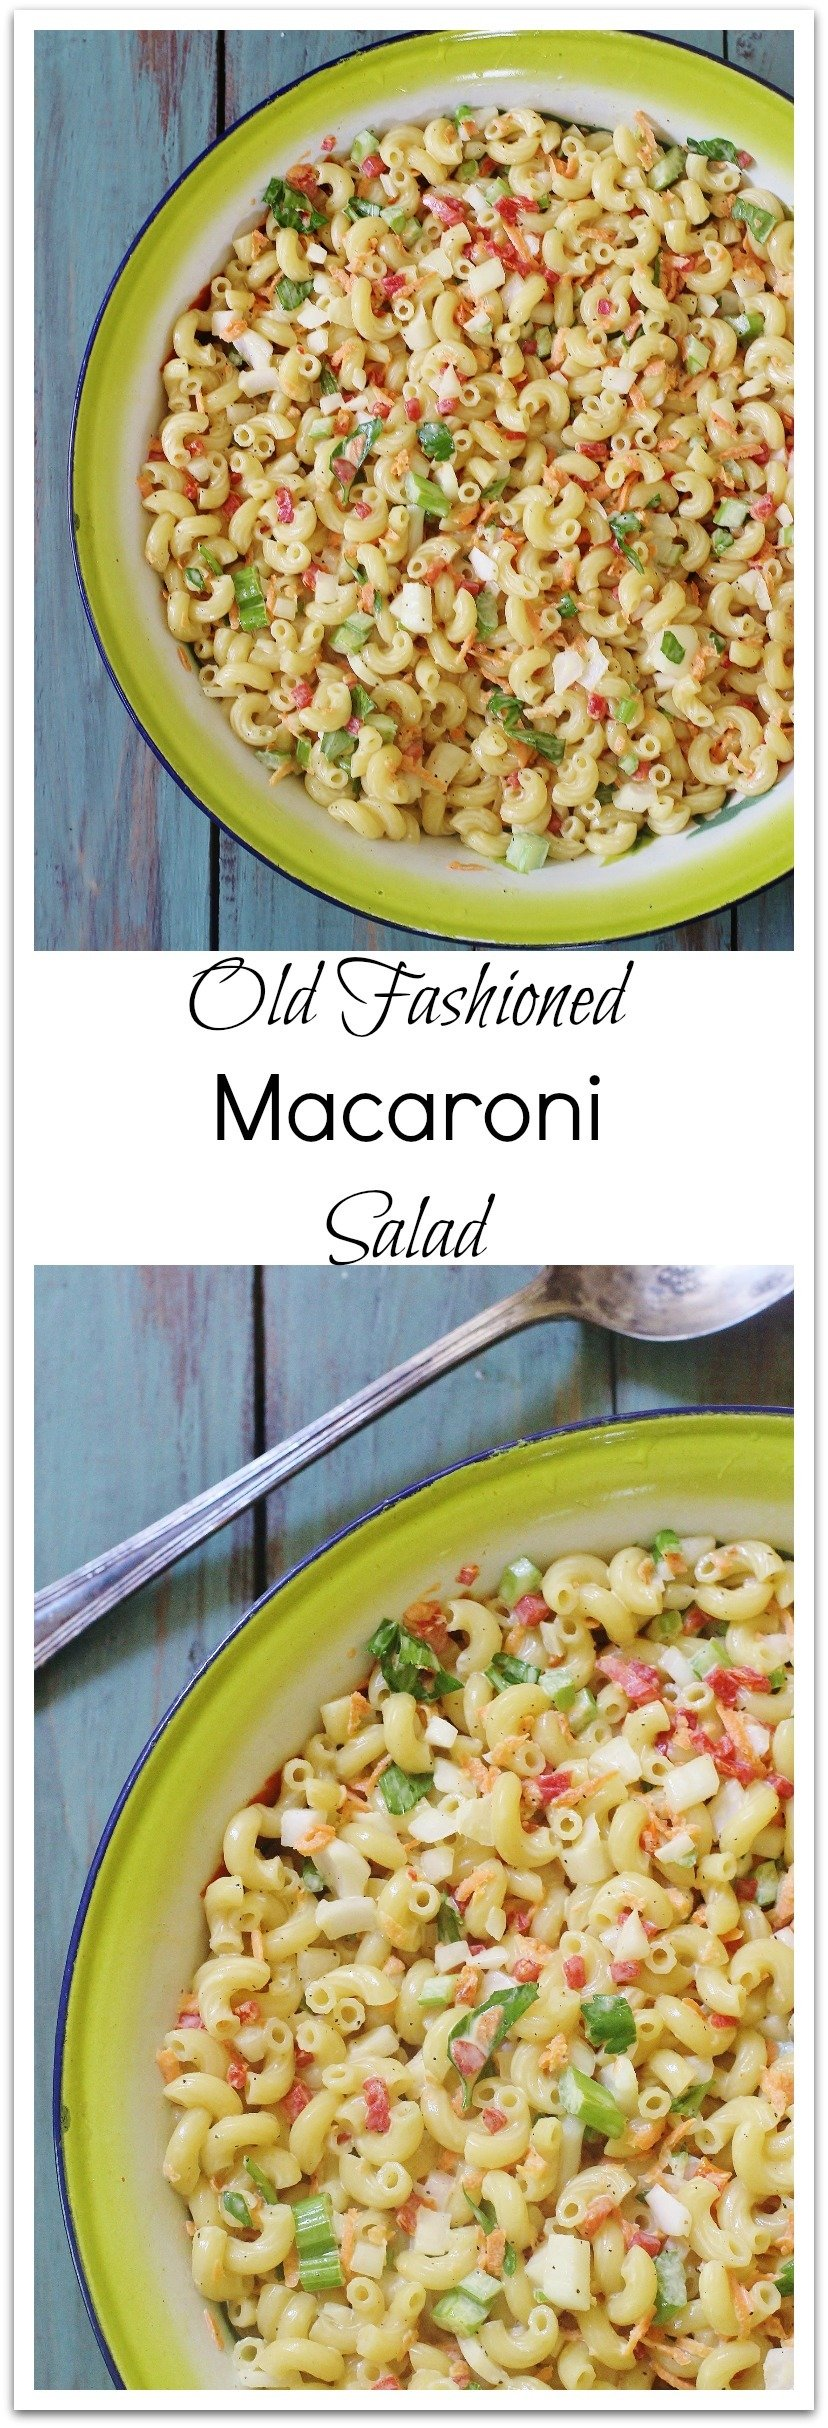 Served chilled, this salad is creamy, cool, tart and sweet.  A great combination of flavors and nostalgia. I prefer the mild flavor of rice vinegar in this recipe. #Macaroni #Salad